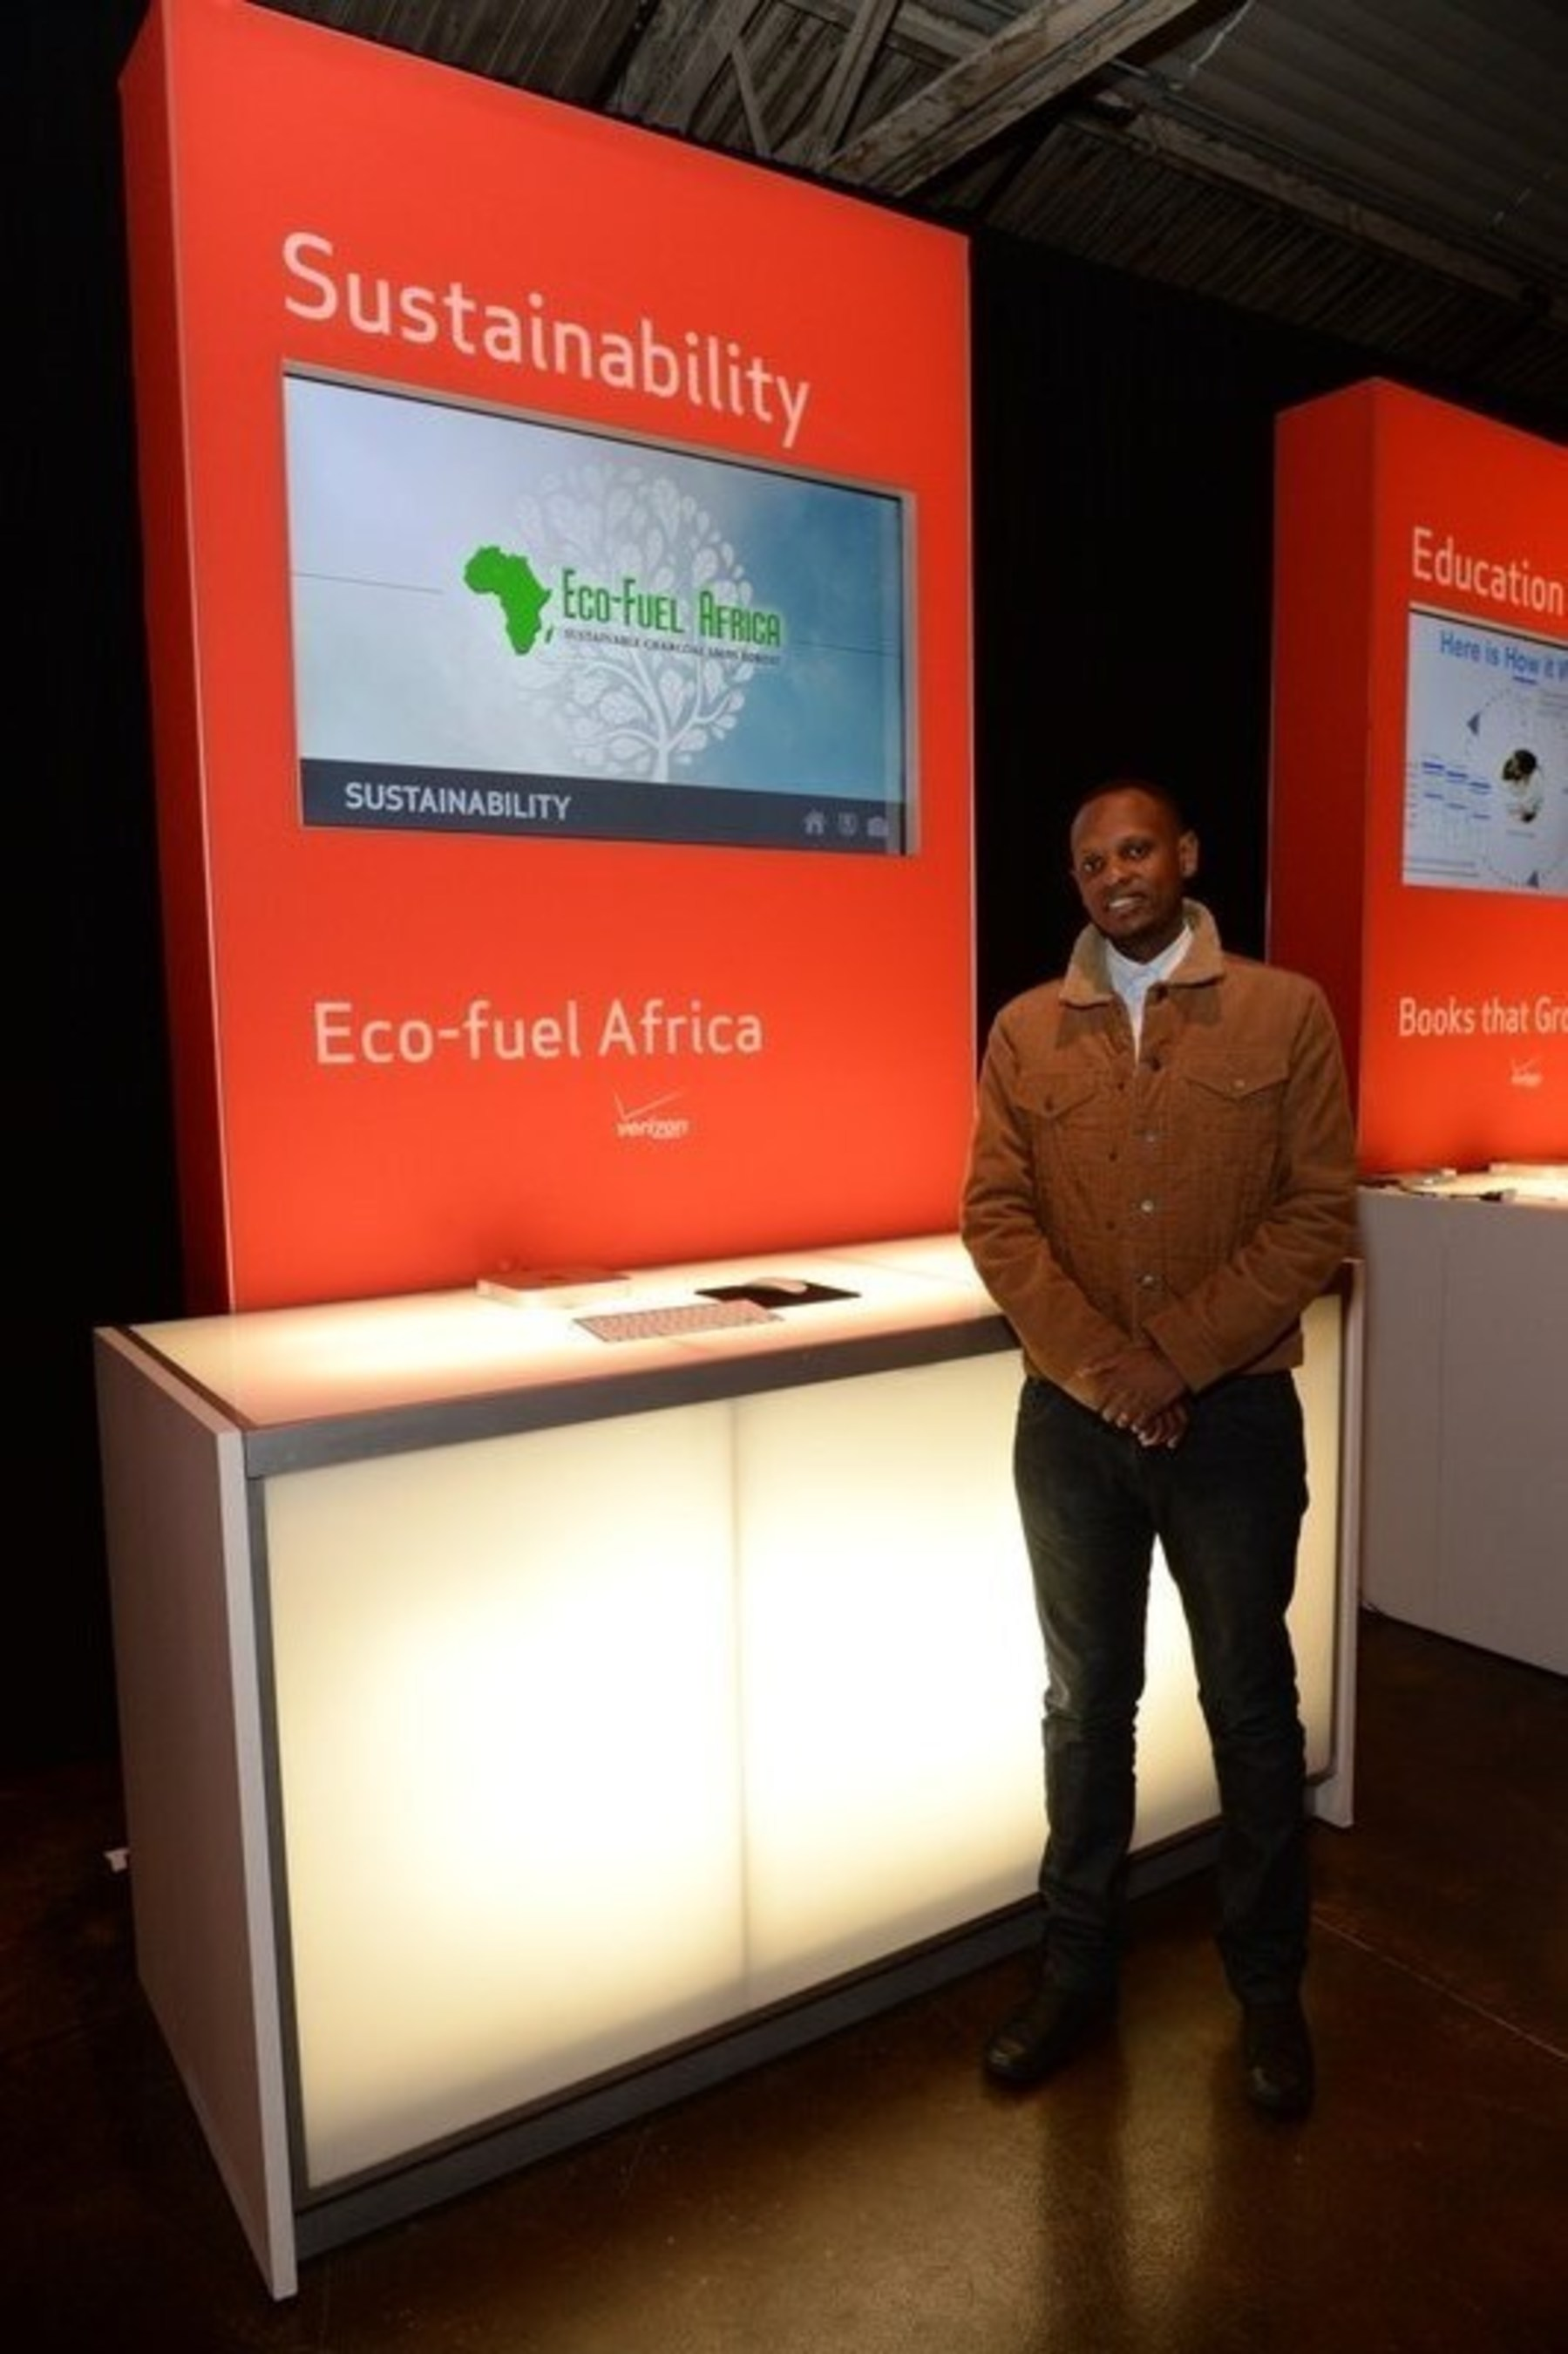 """$1M Winner in the sustainability category: Eco-fuel Africa is committed to fueling an environmentally and financially sustainable Africa. According to Eco-fuel Africa, 2 billion tons of biomass are burned each year, leading to unsustainable levels of deforestation and CO2 emissions. To solve this problem, Eco-fuel Africa, based in Kampala, Uganda, has created """"green"""" charcoal produced from agricultural waste that's 65% cheaper than charcoal from wood and burns clearer and longer than wood-based fuels. The fuel reduces the rate of deforestation, creates sustainable local jobs, saves money and reduces indoor air pollution."""